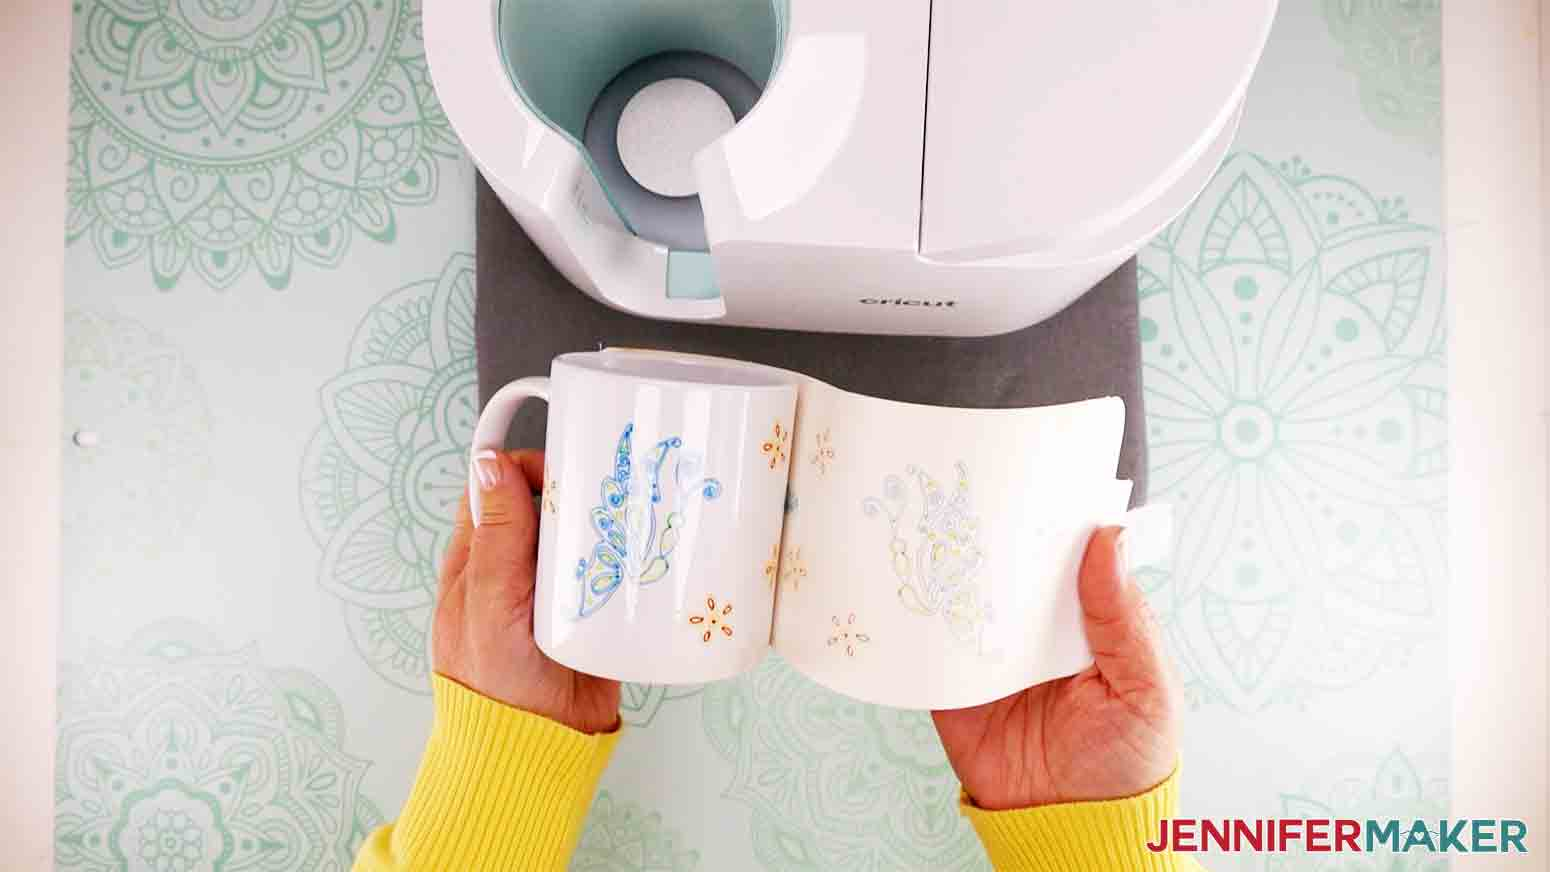 peel back paper and design to reveal a beautiful butterfly mug